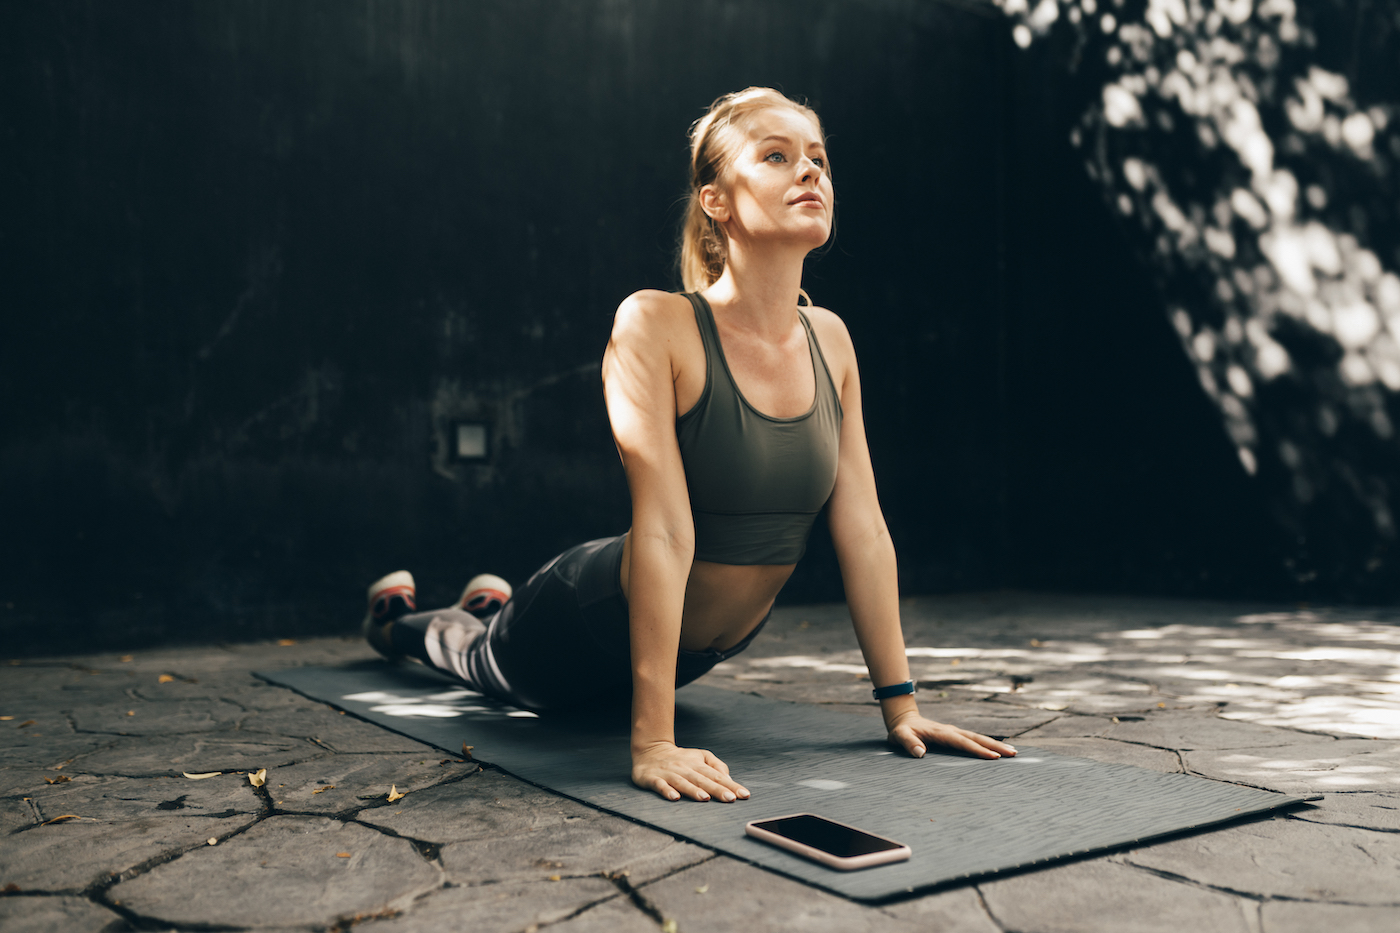 6 Workouts for Beginners That You Can Knock Out in Under 30 Minutes